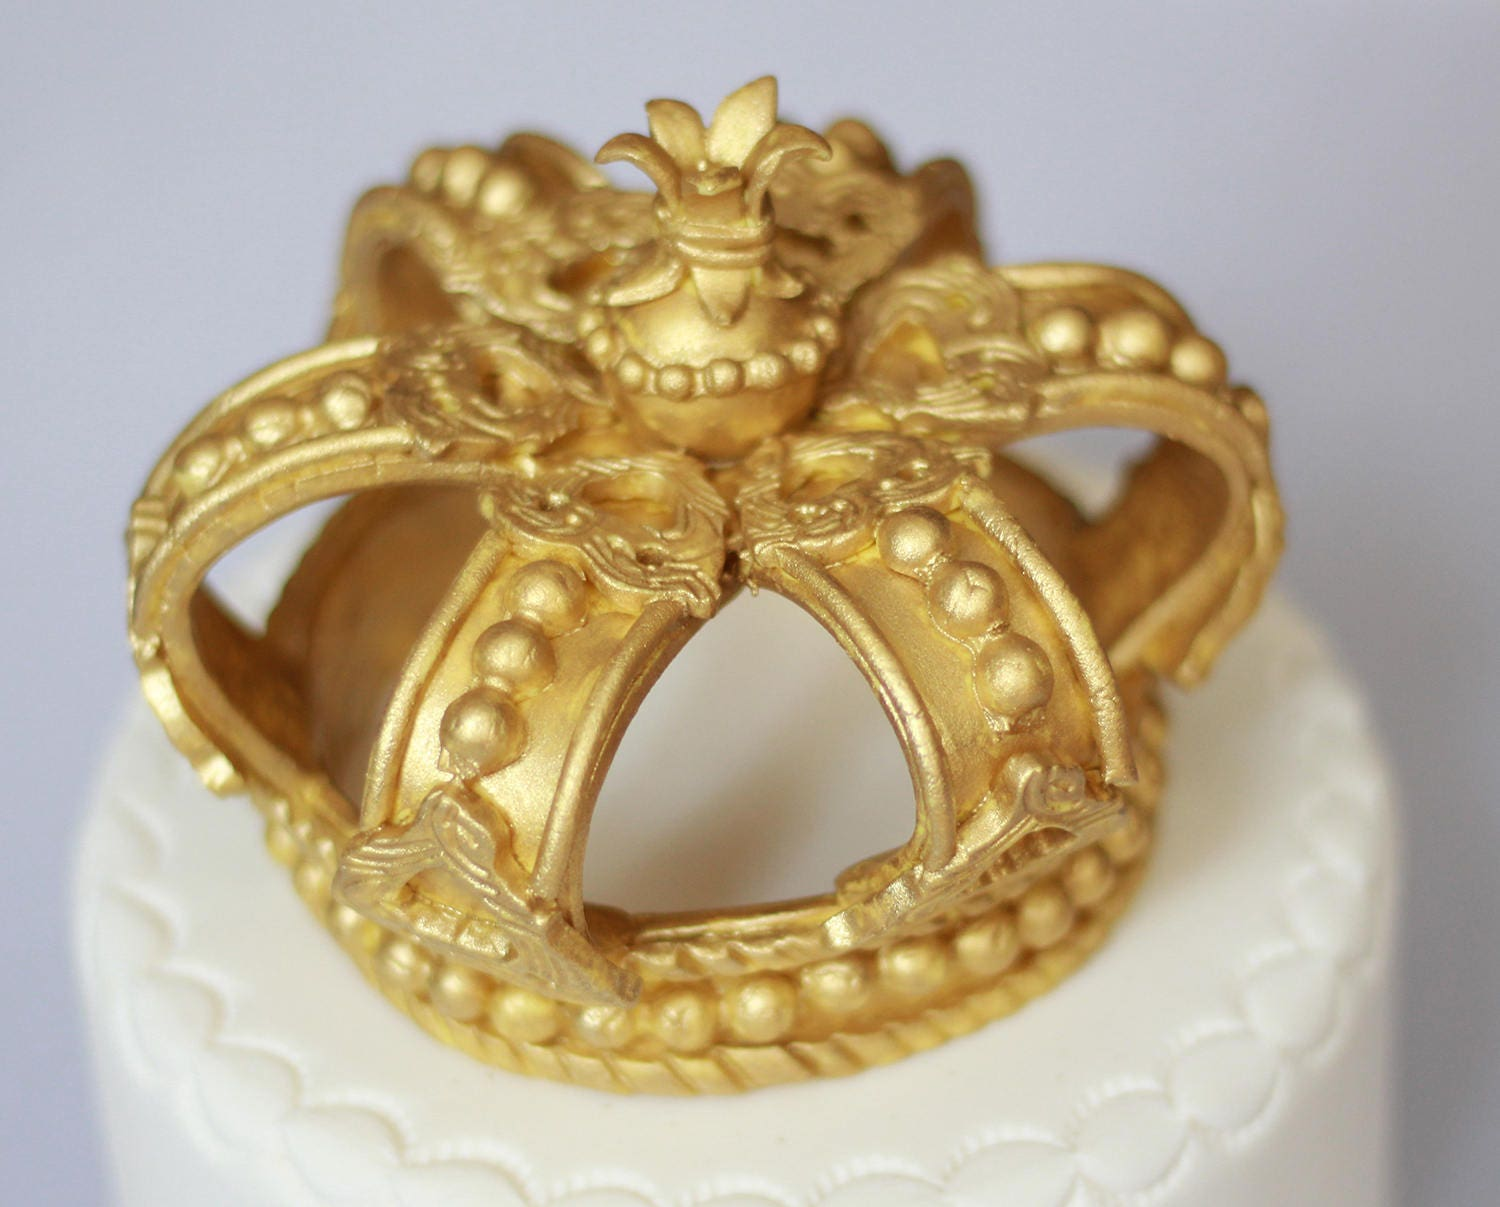 Fondant gold crown cake topper. King crown or queen crown for